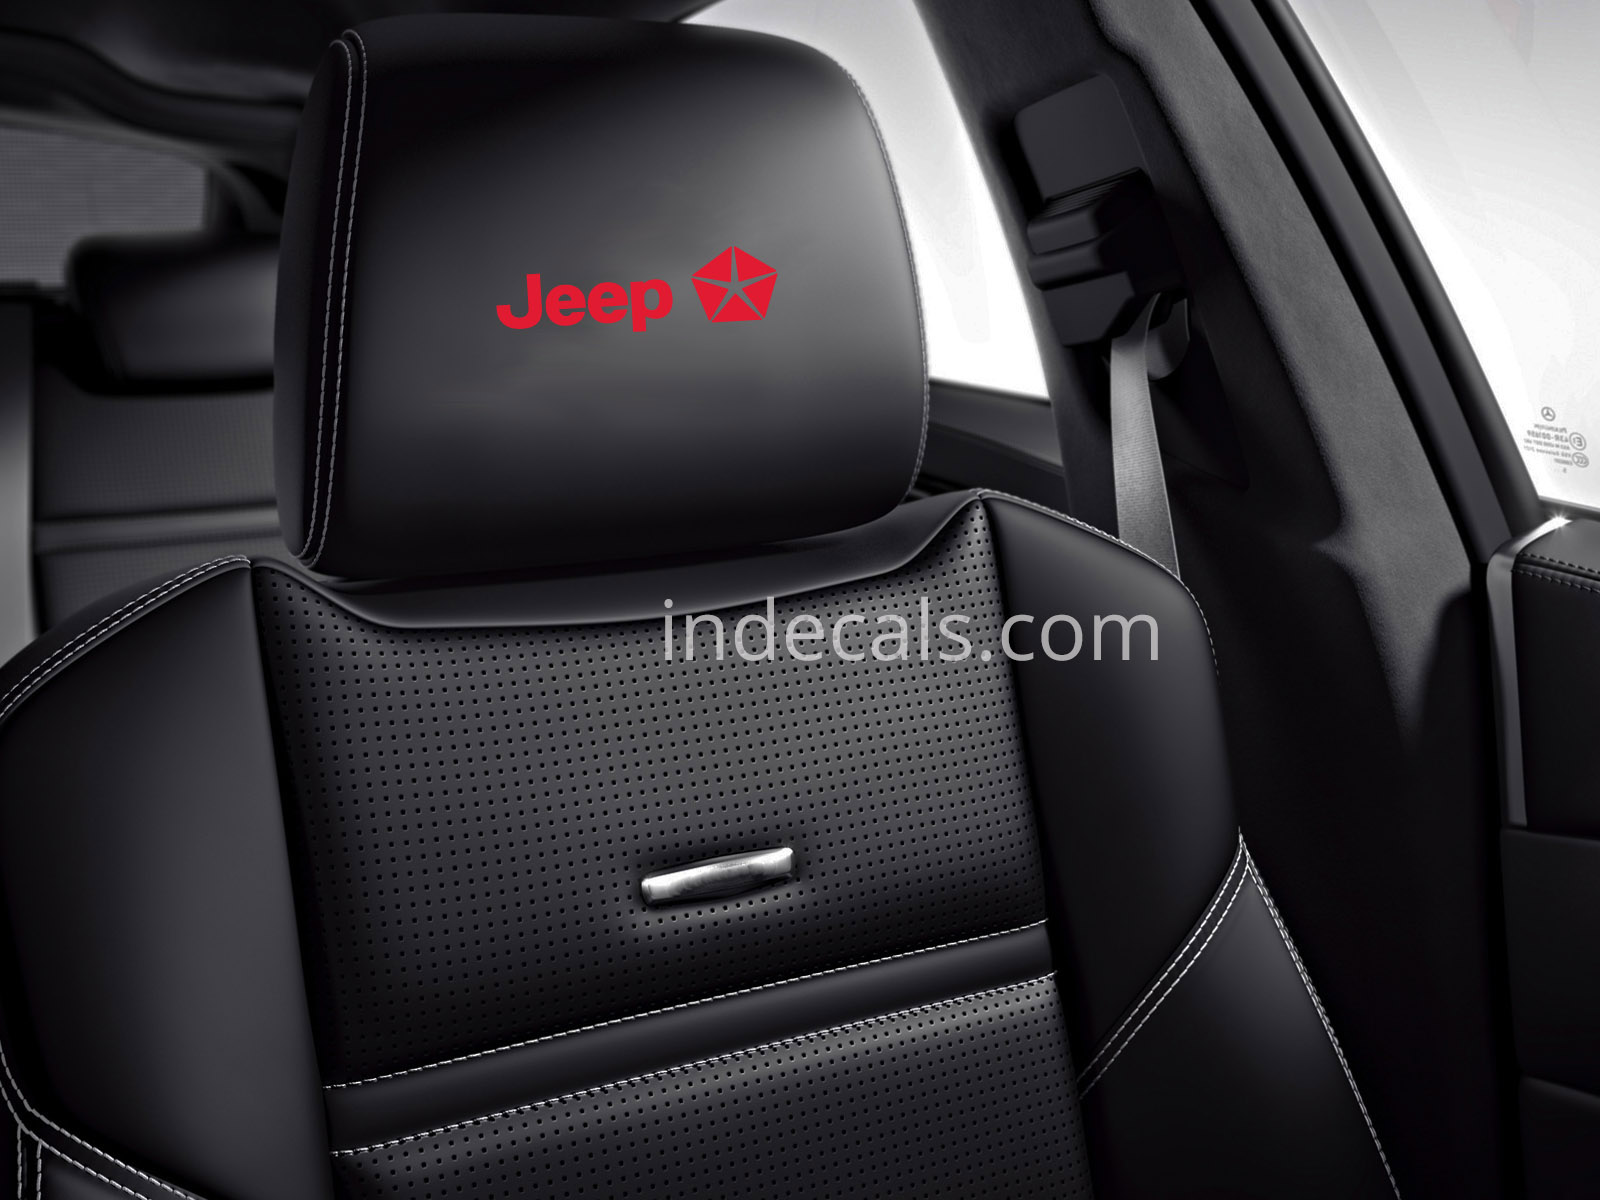 6 x Jeep Stickers for Headrests - Red